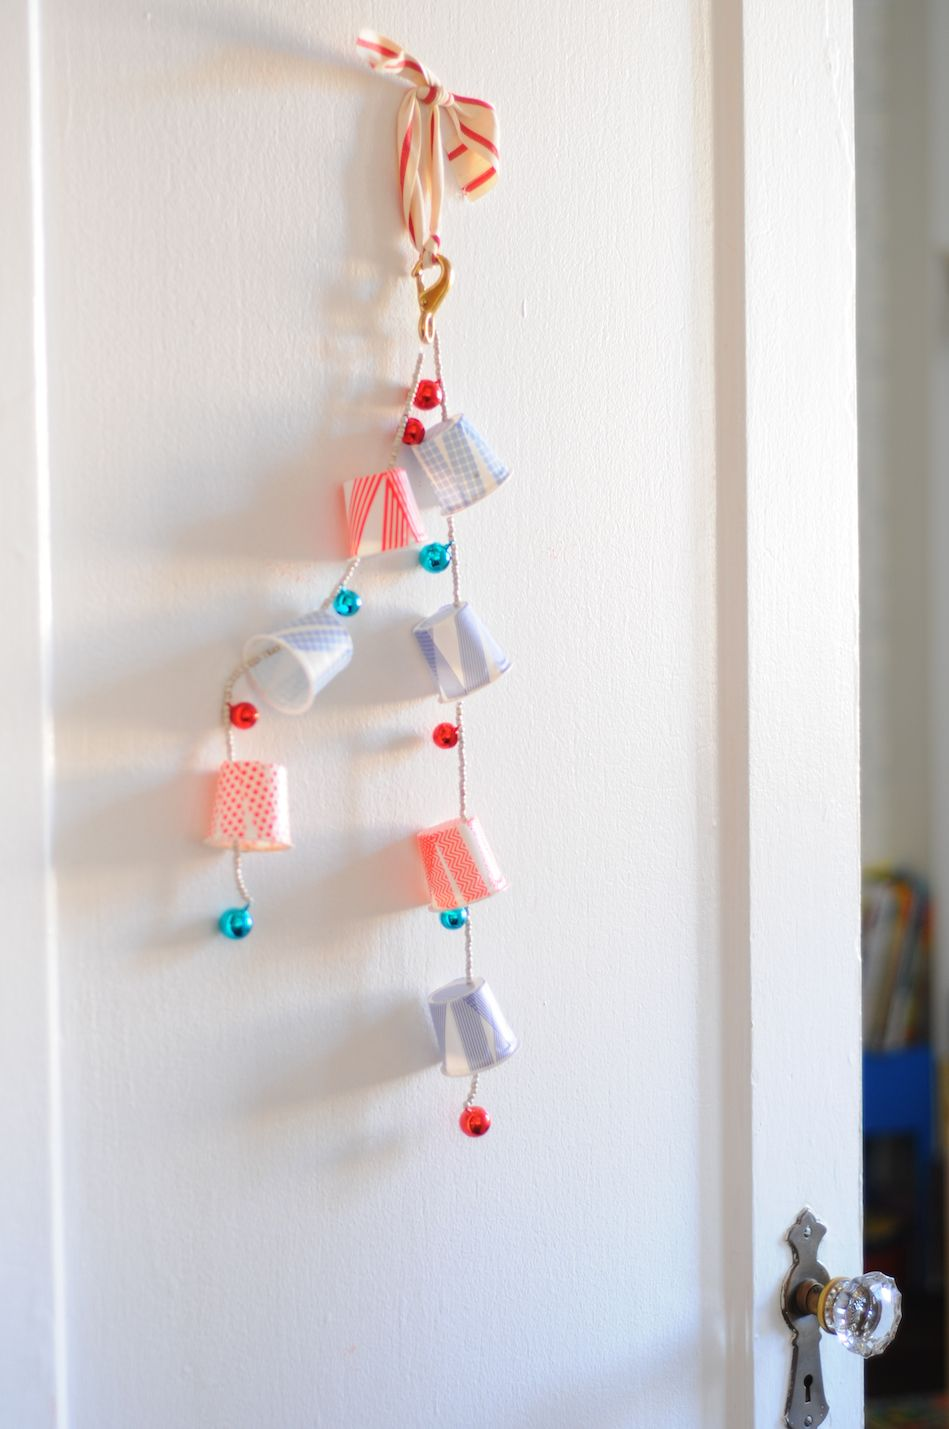 Turn k-cups into a cute door chime or noisemaker for july 4th! Use washi tape and bells to make this festive fourth of July decoration. & Turn k-cups into a cute door chime or noisemaker for july 4th! Use ...